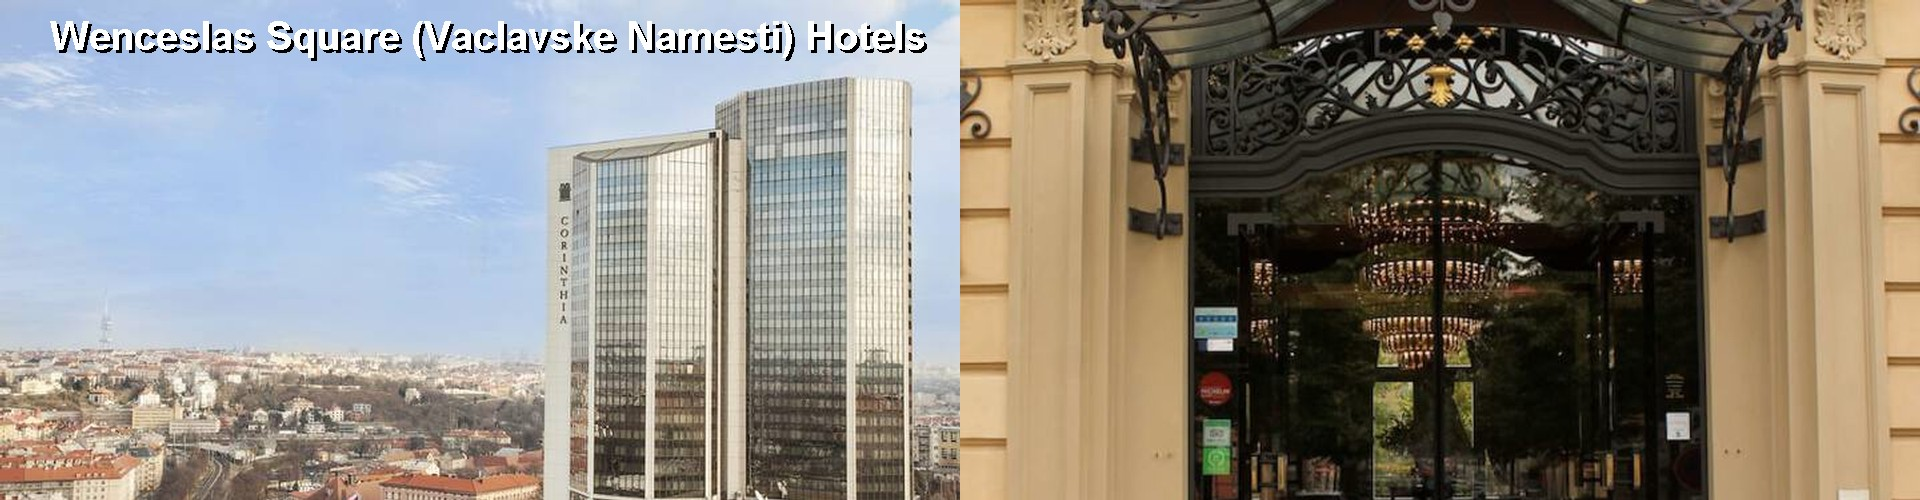 5 Best Hotels near Wenceslas Square (Vaclavske Namesti)